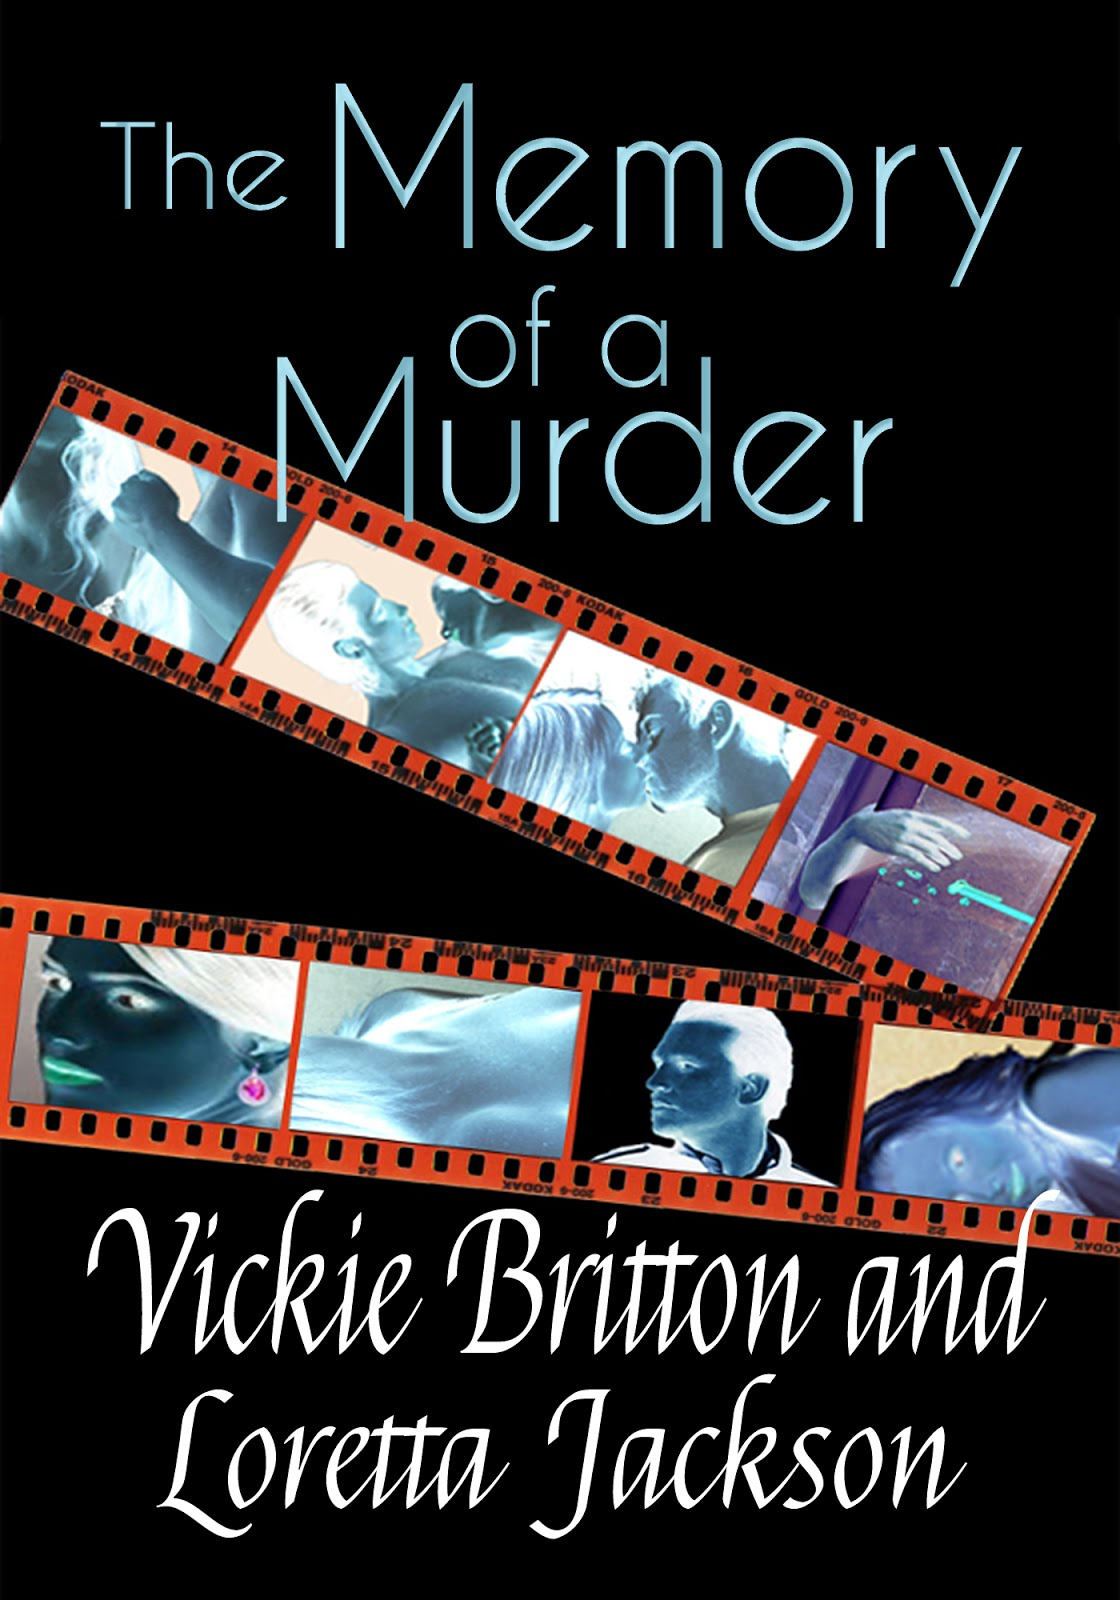 THIS WEEK'S SPECIAL--READ FREE! THE MEMORY OF A MURDER